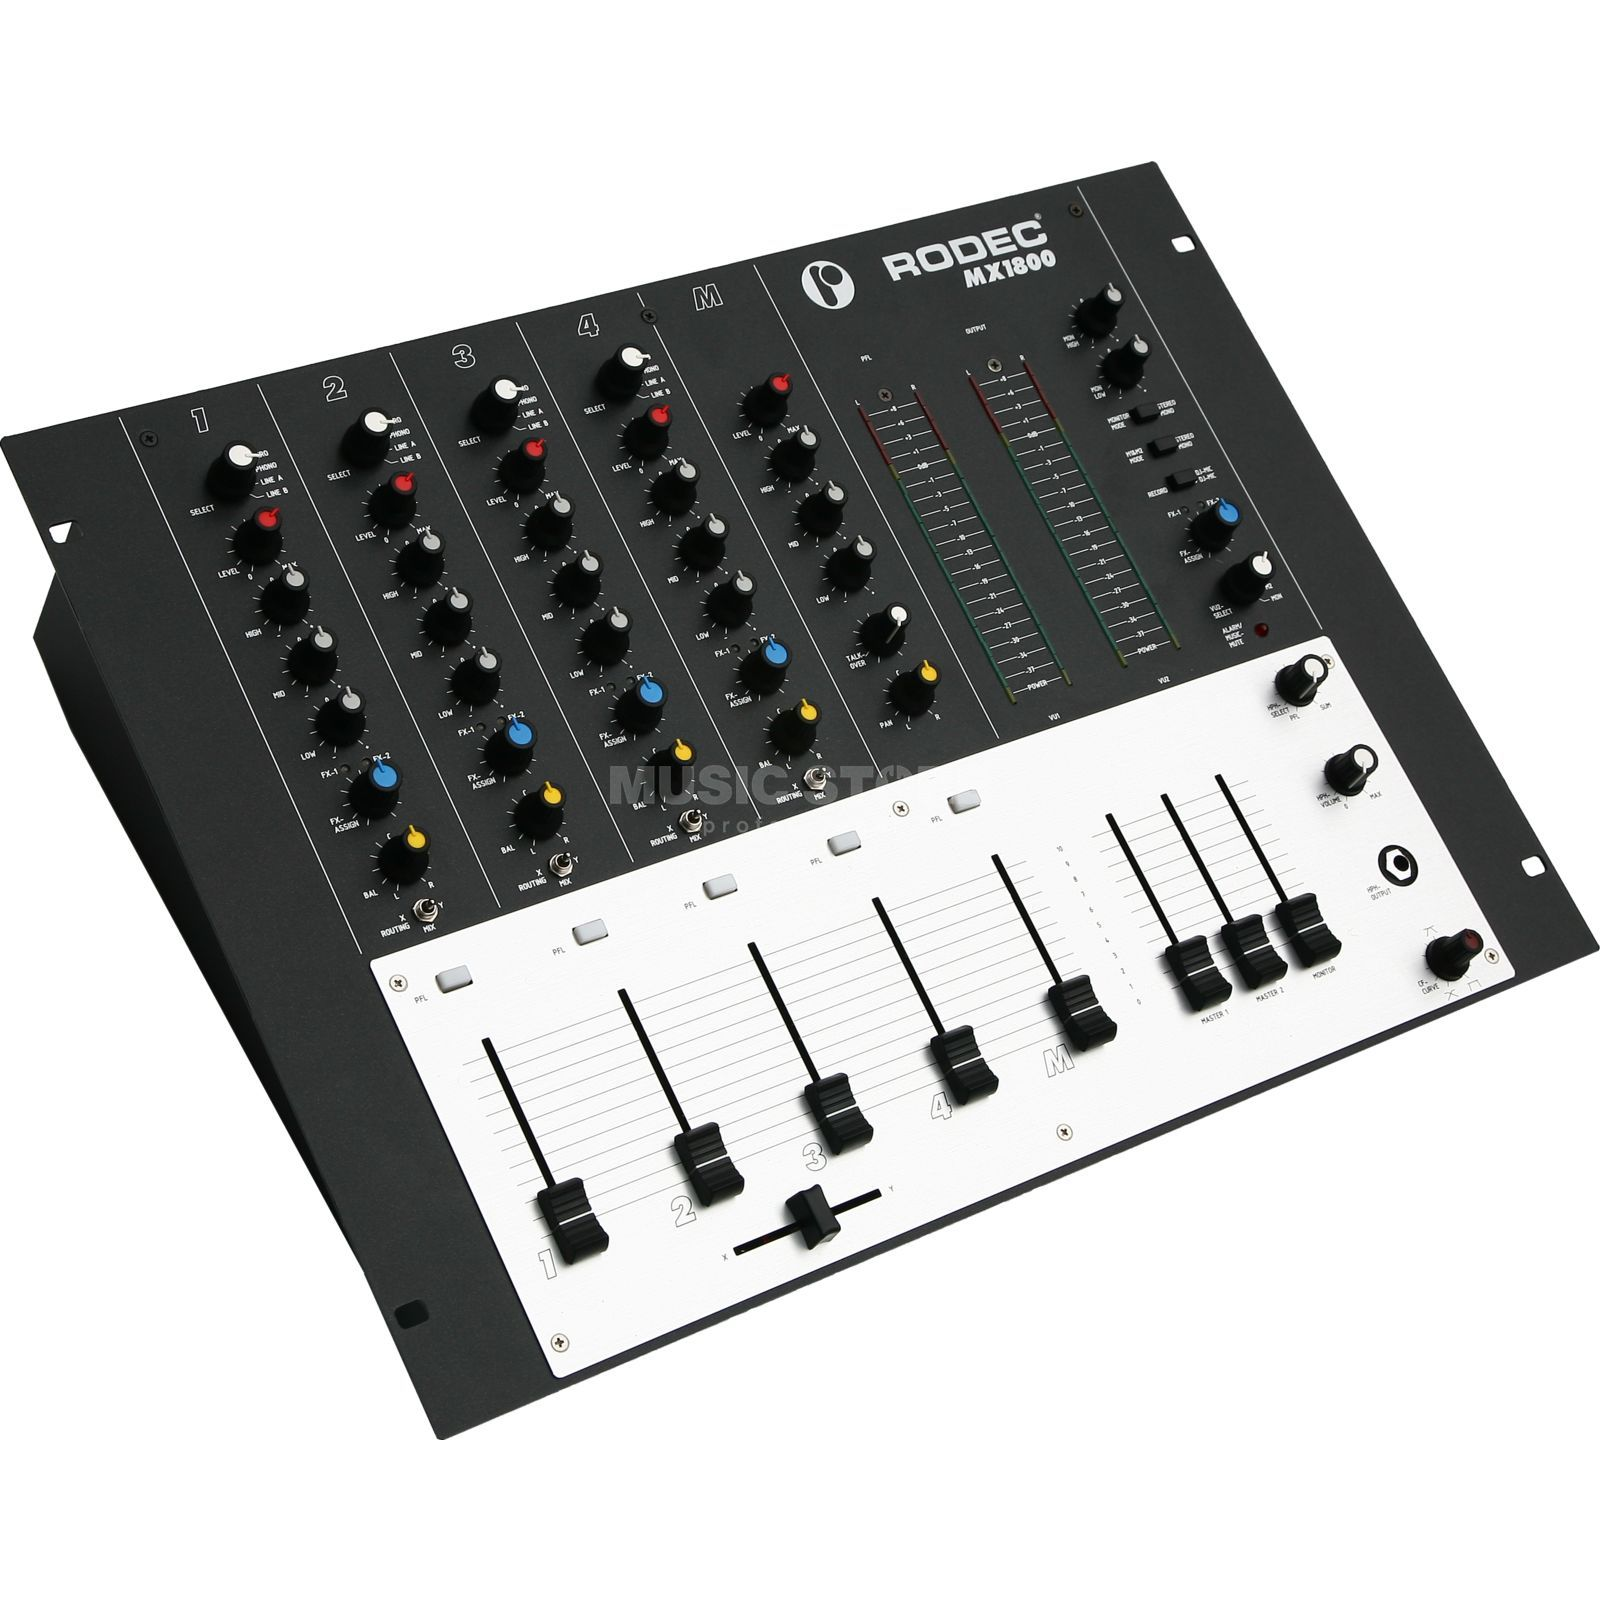 "Rodec MX1800 USB 5-Channel Audio Mixer, 19"" Zdjęcie produktu"